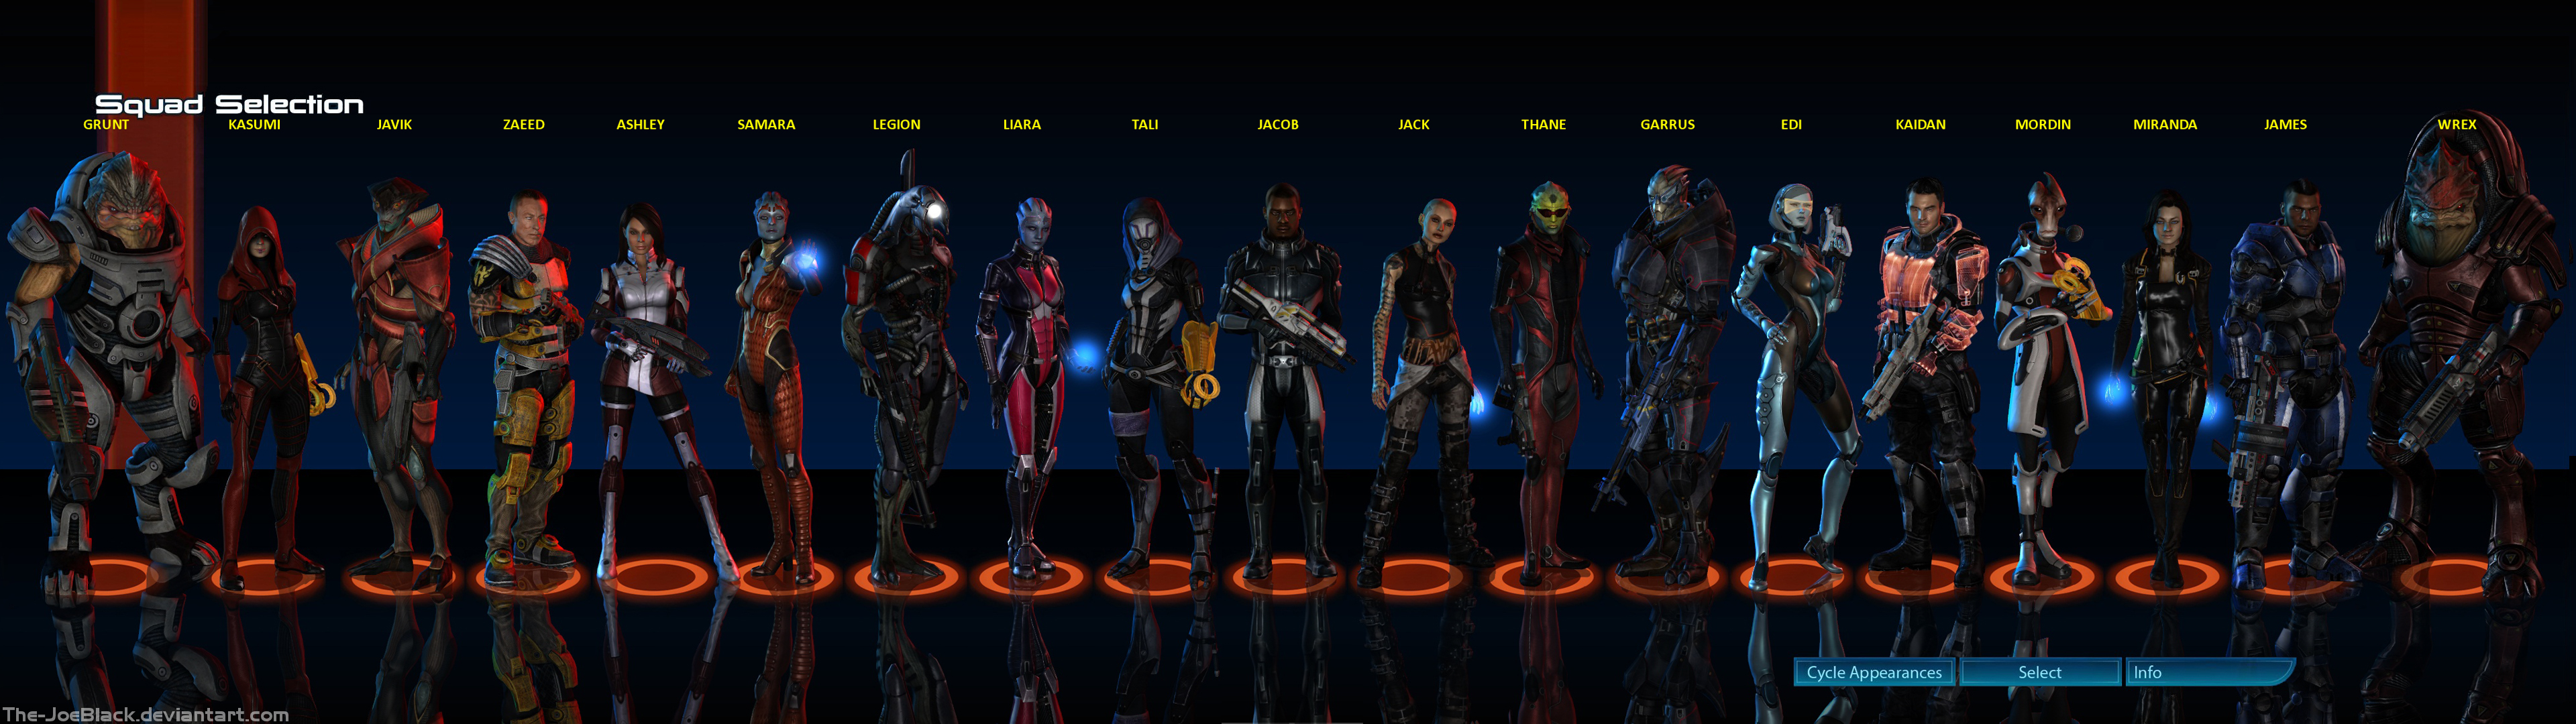 mass_effect_squad_selection_complete_by_the_joeblack-d5n2j2f.jpg